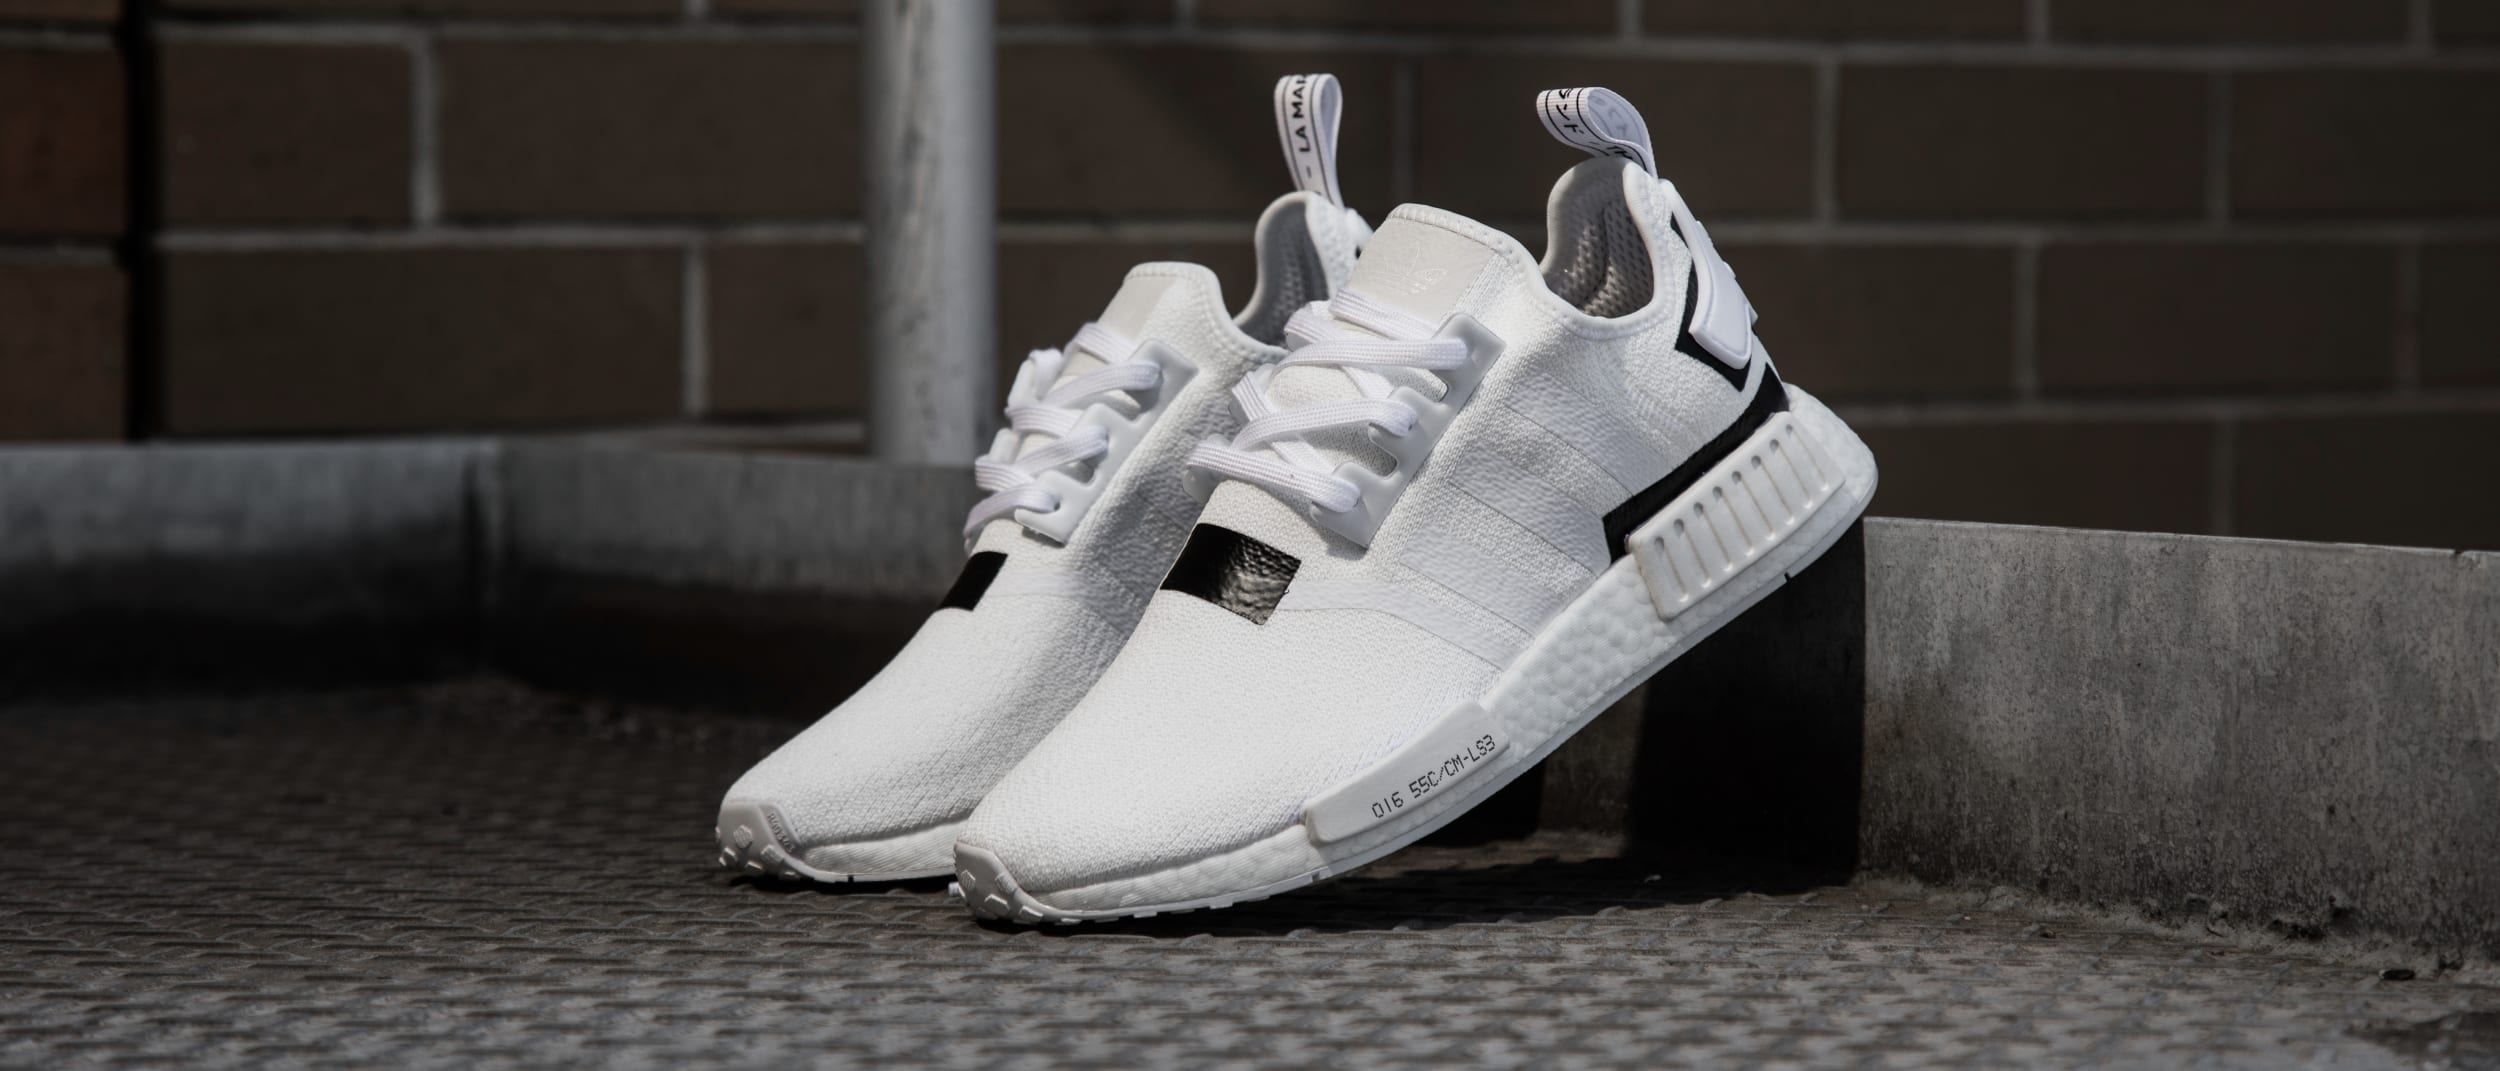 adidas: NMD_R1 shoes have arrived